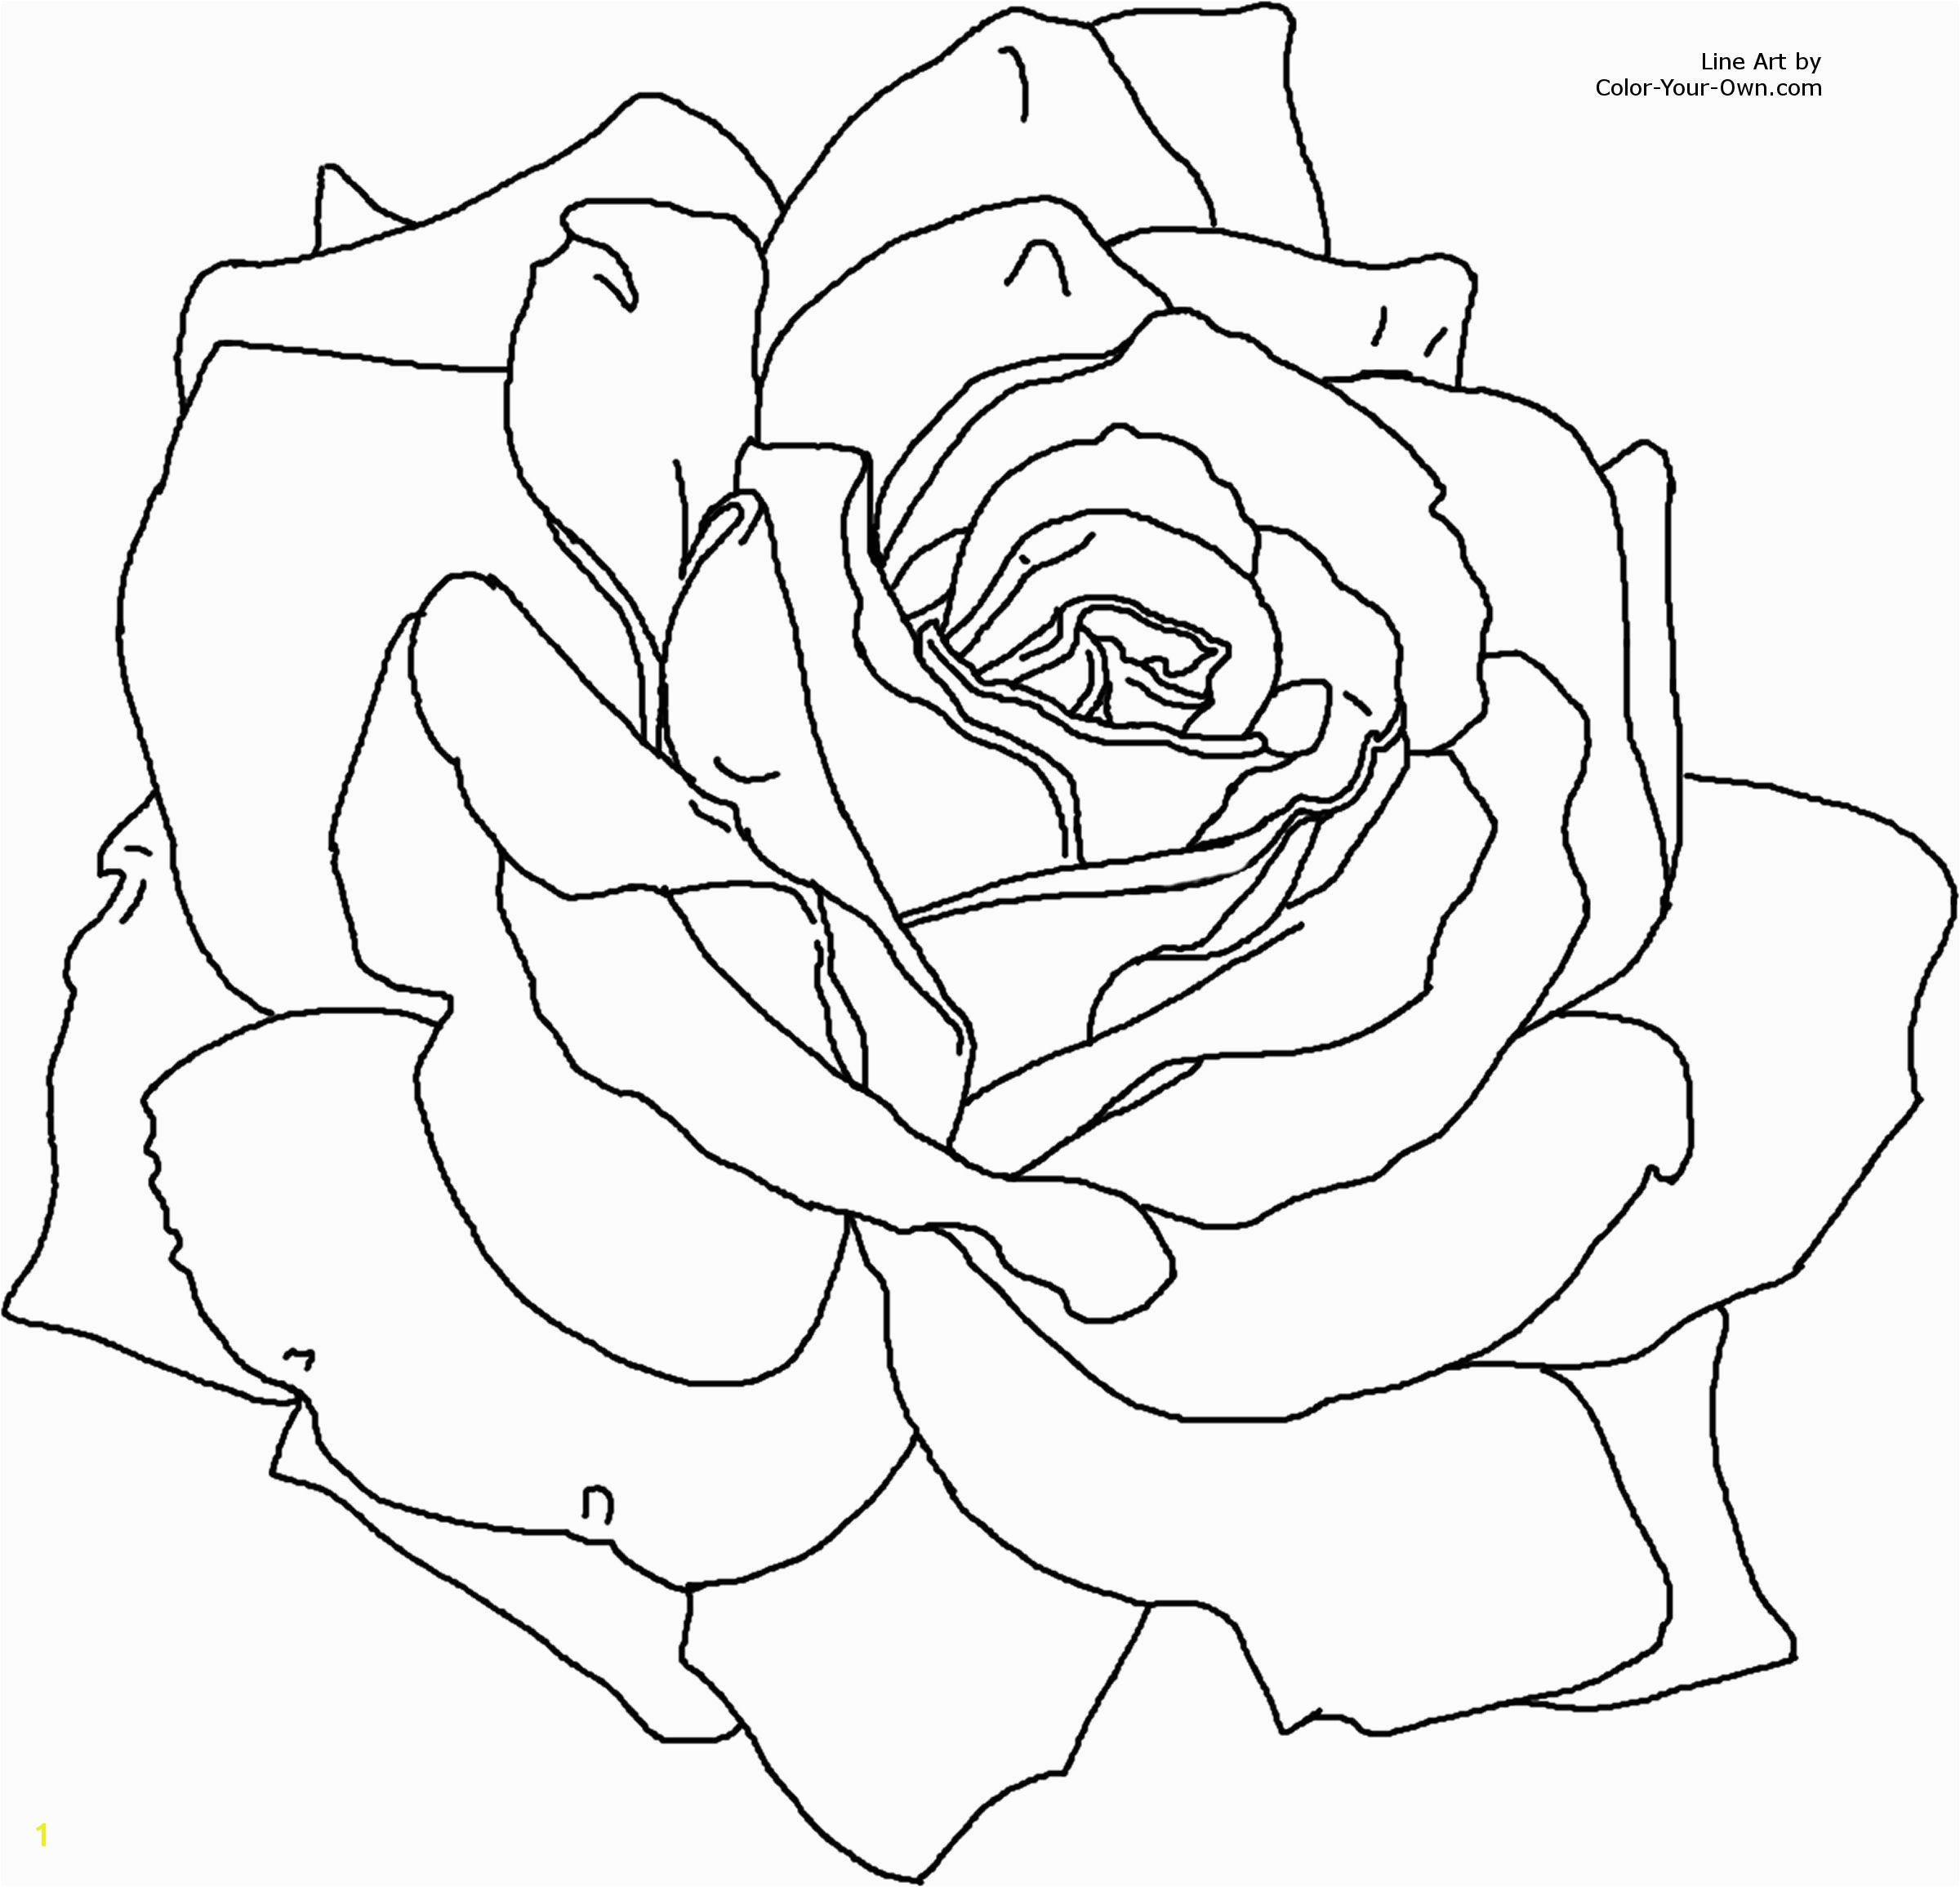 Free Coloring Pages Of Roses and Heart Flower Page Printable Coloring Sheets